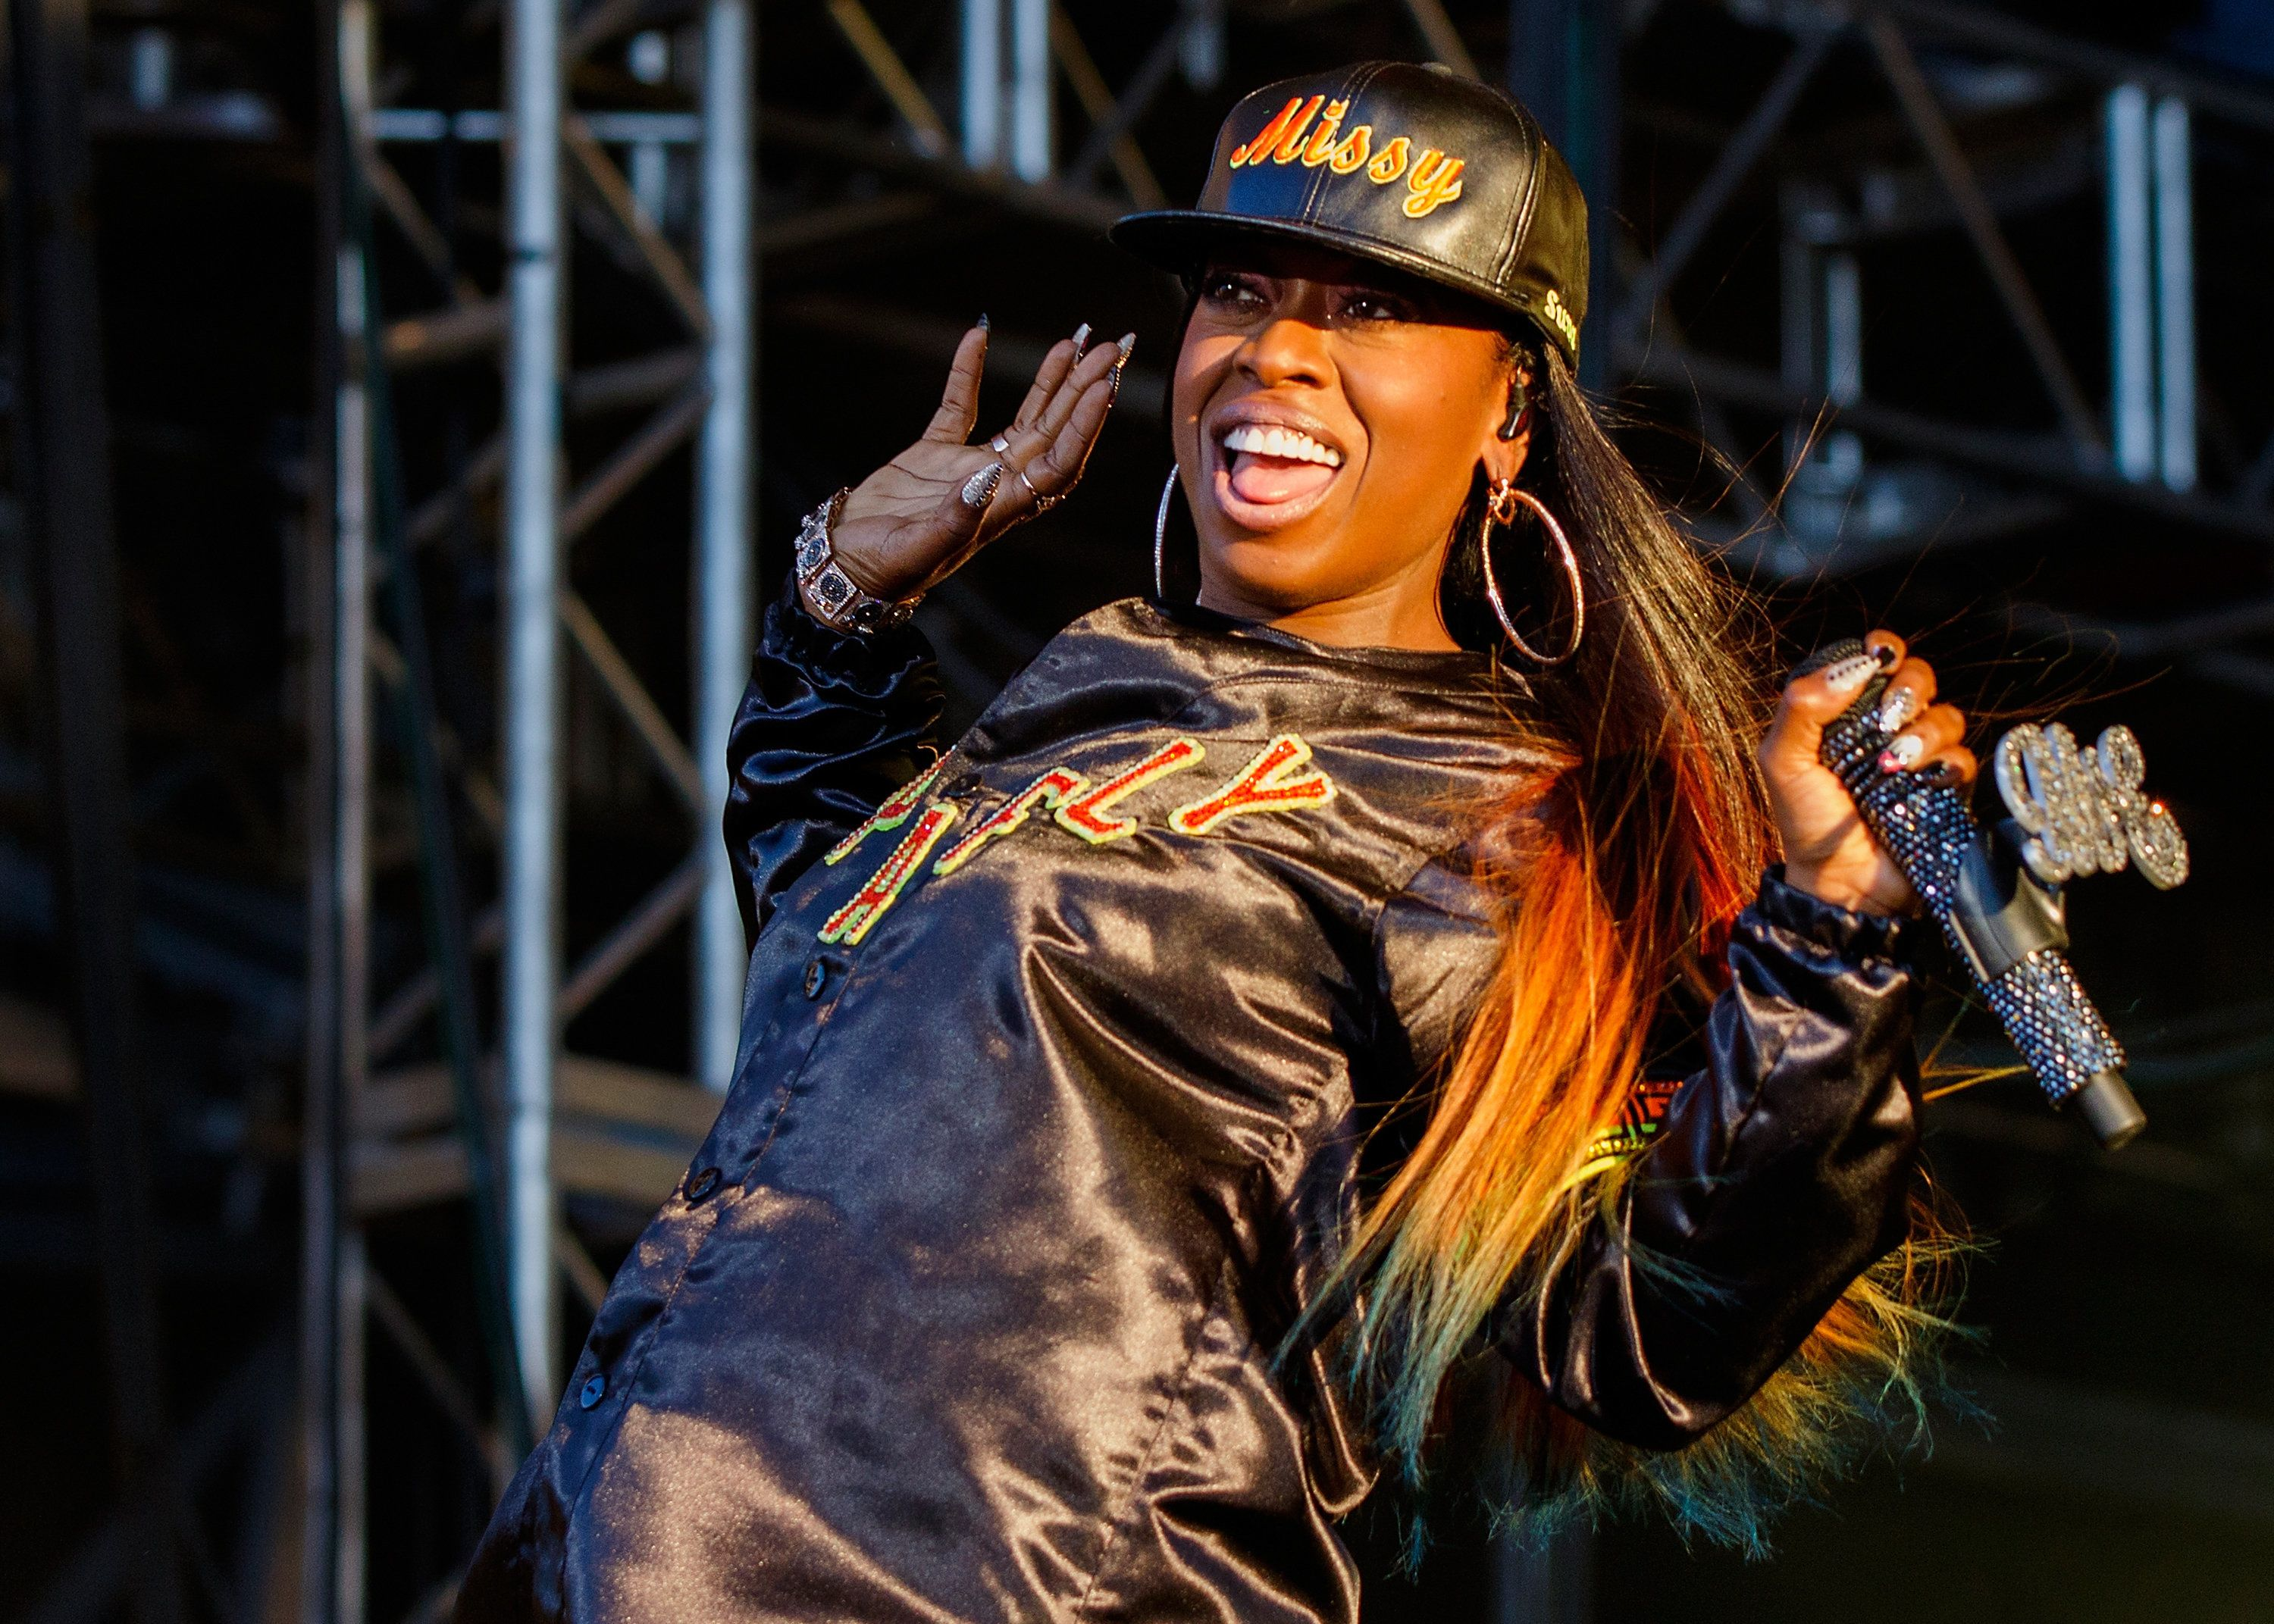 PEMBERTON, BC - JULY 19:  Singer-songwriter Missy Elliott performs onstage during the Pemberton Music Festival on July 19, 2015 in Pemberton, Canada.  (Photo by Andrew Chin/Getty Images)